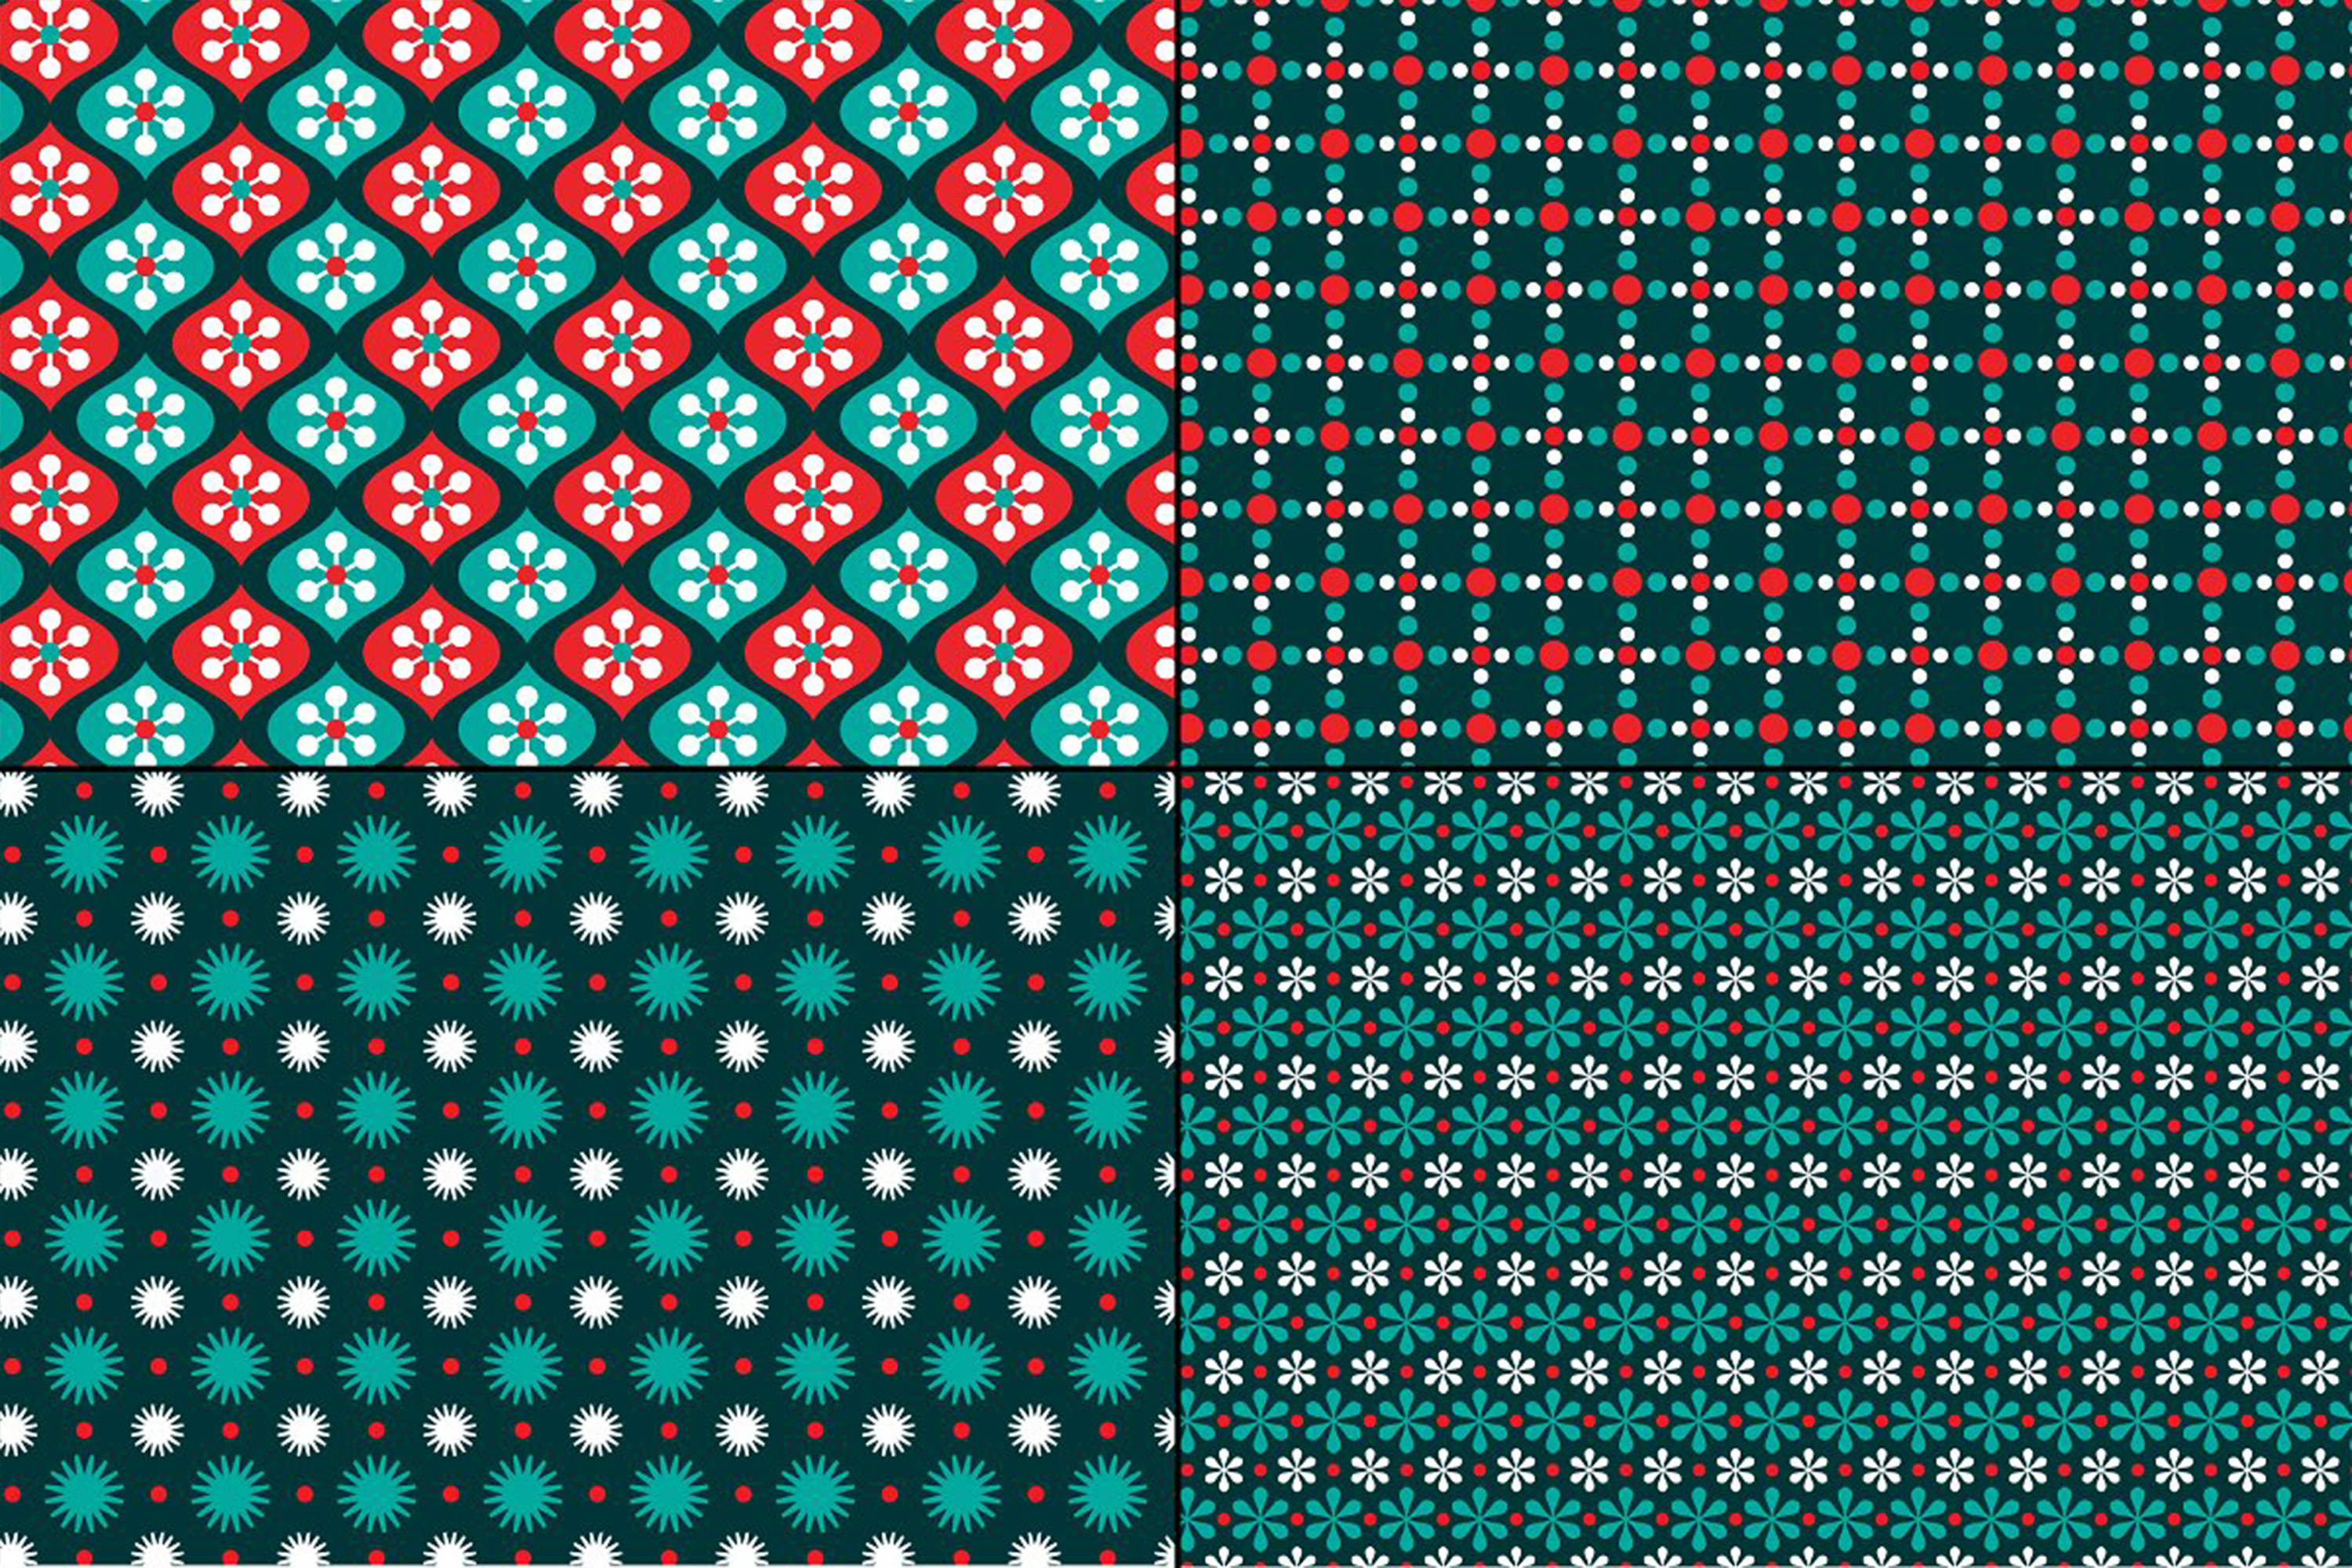 Small Seamless Holiday Patterns example image 3